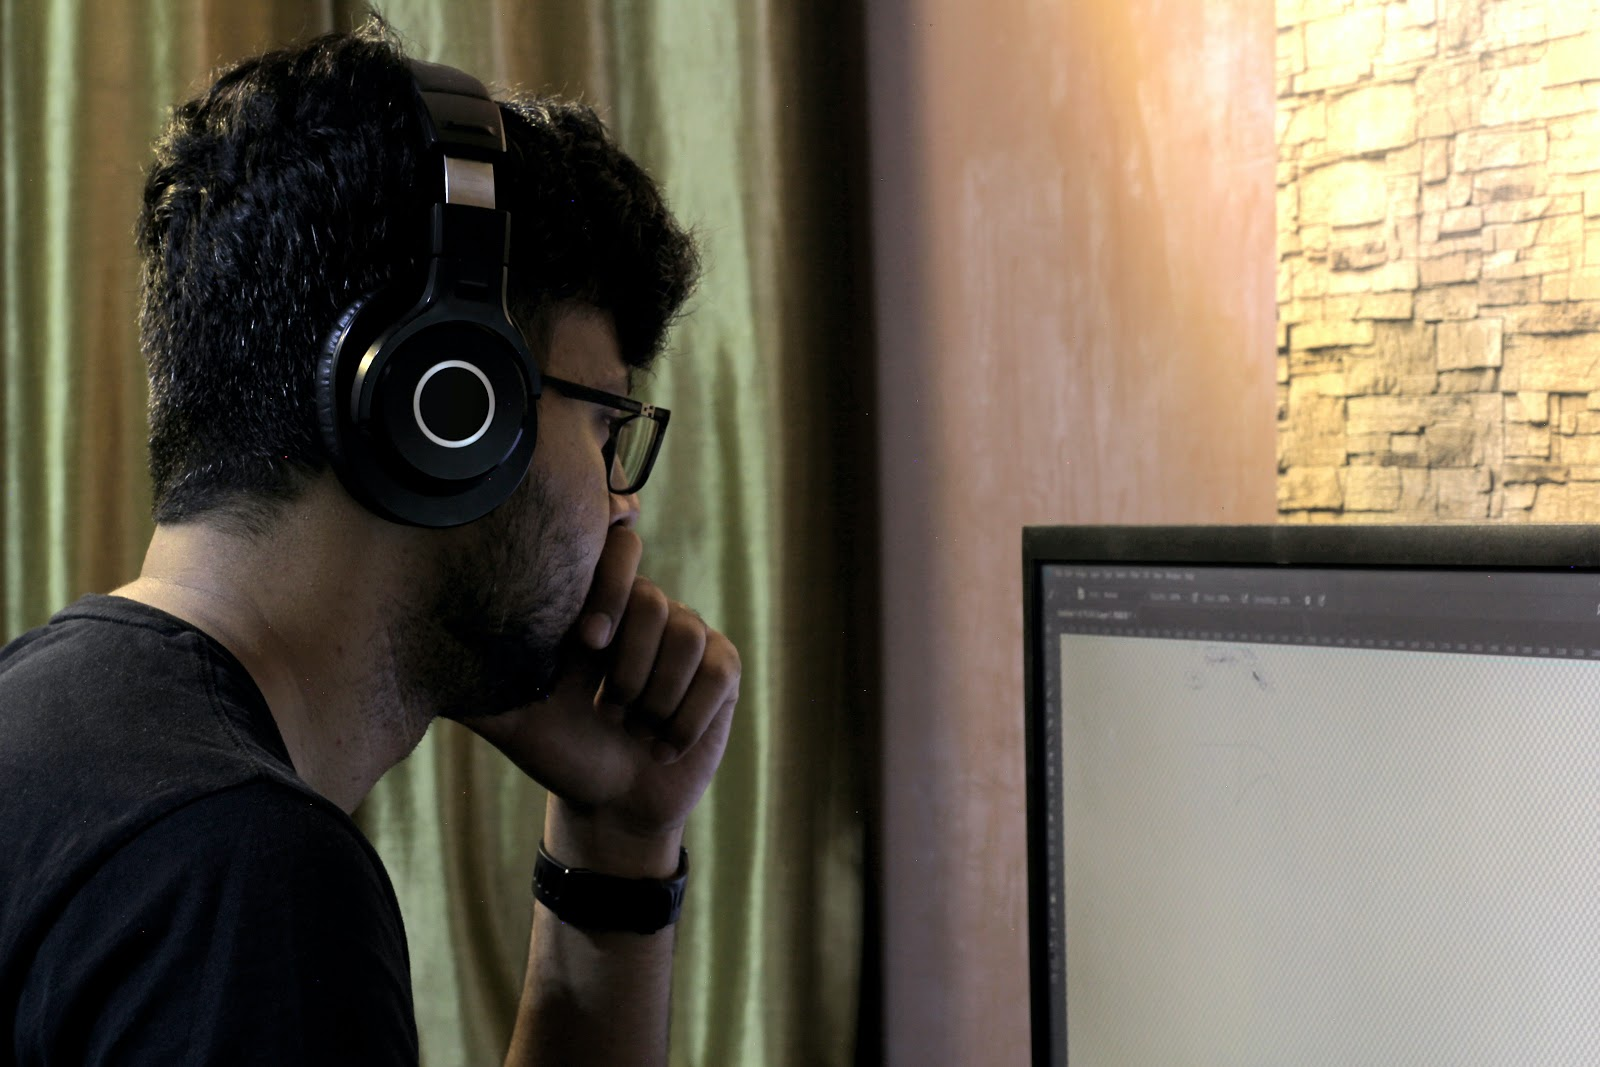 man with headphones looking at computer screen